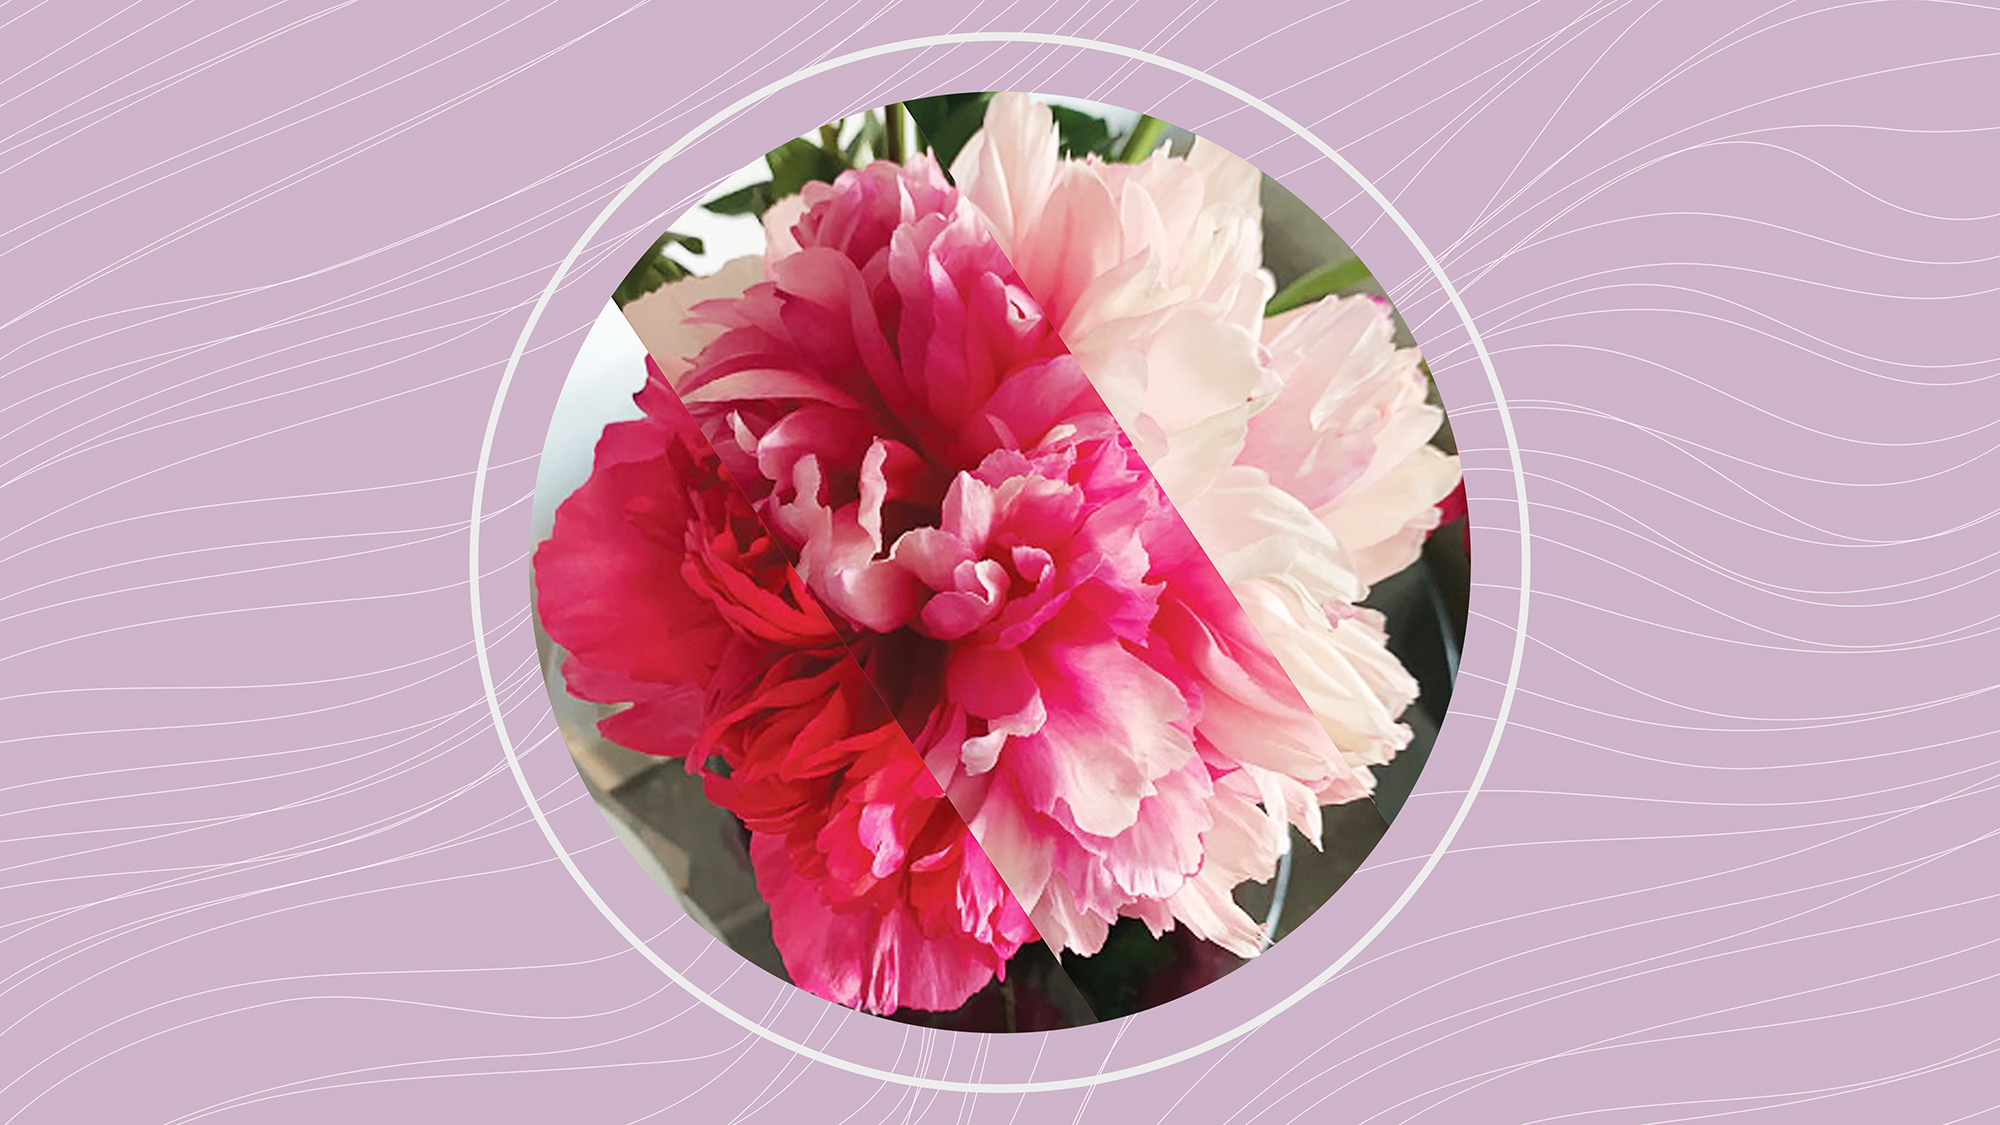 a circle divided into 3 sections with different colored peonies in each section on a designed background